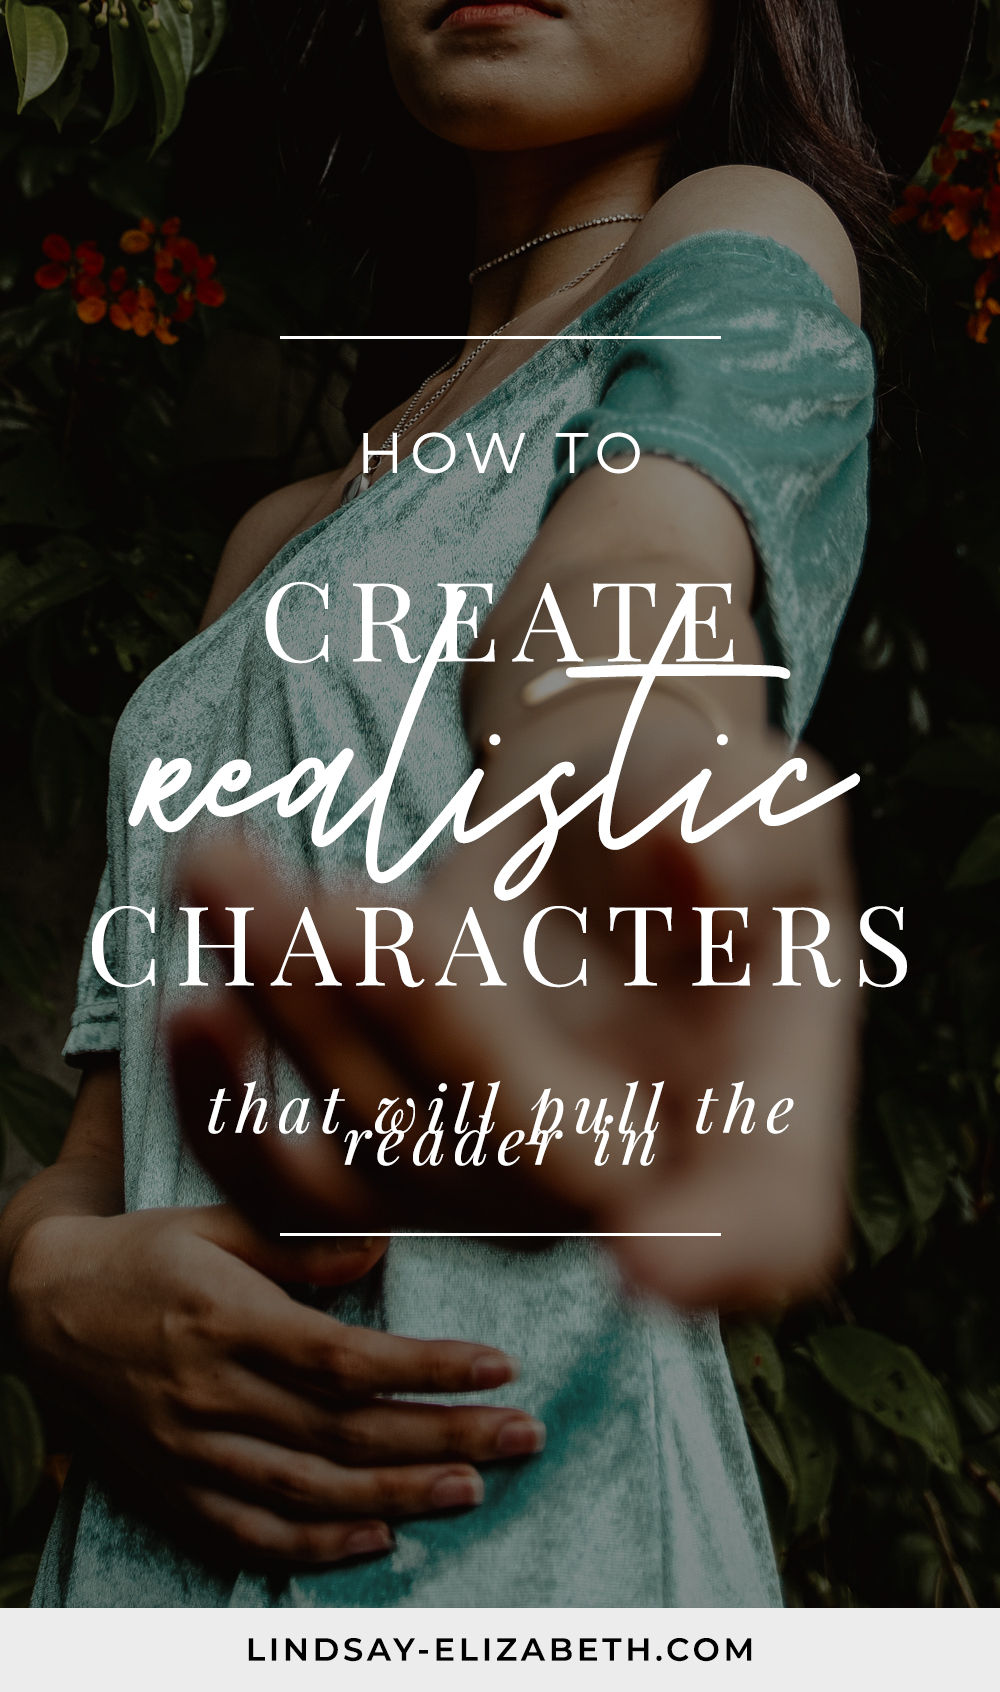 To create realistic, compelling characters, it all starts with asking the right questions to get the heart of what drives them and in turn, drives the story. This post breaks down the most important questions to consider when creating characters to make sure you and your readers will connect with them from the get-go. Included is a free printable workbook with a full character profile and questionnaire.